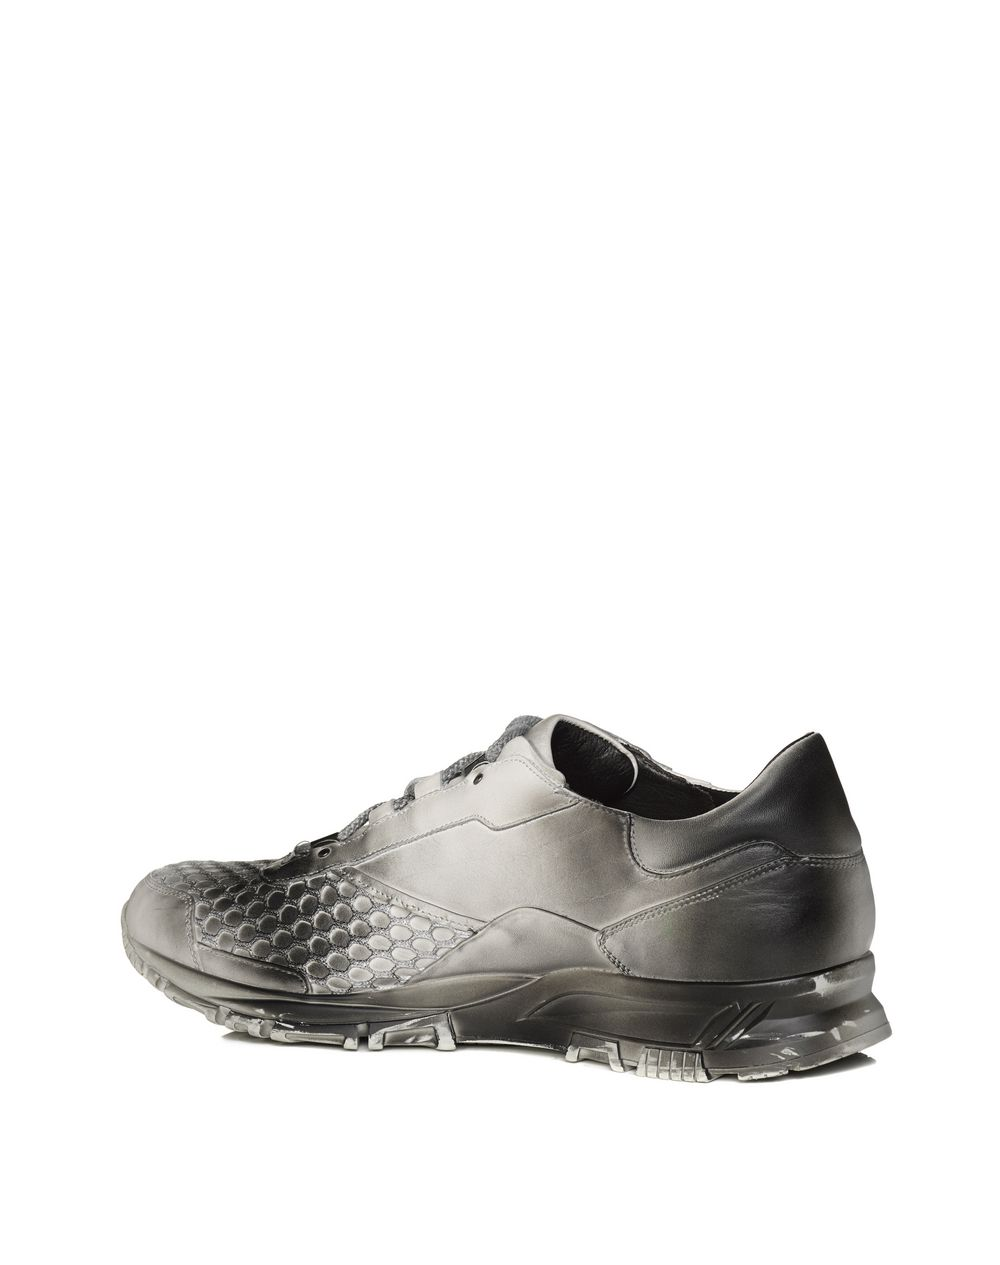 SOFT CALFSKIN CROSS-TRAINER - Lanvin